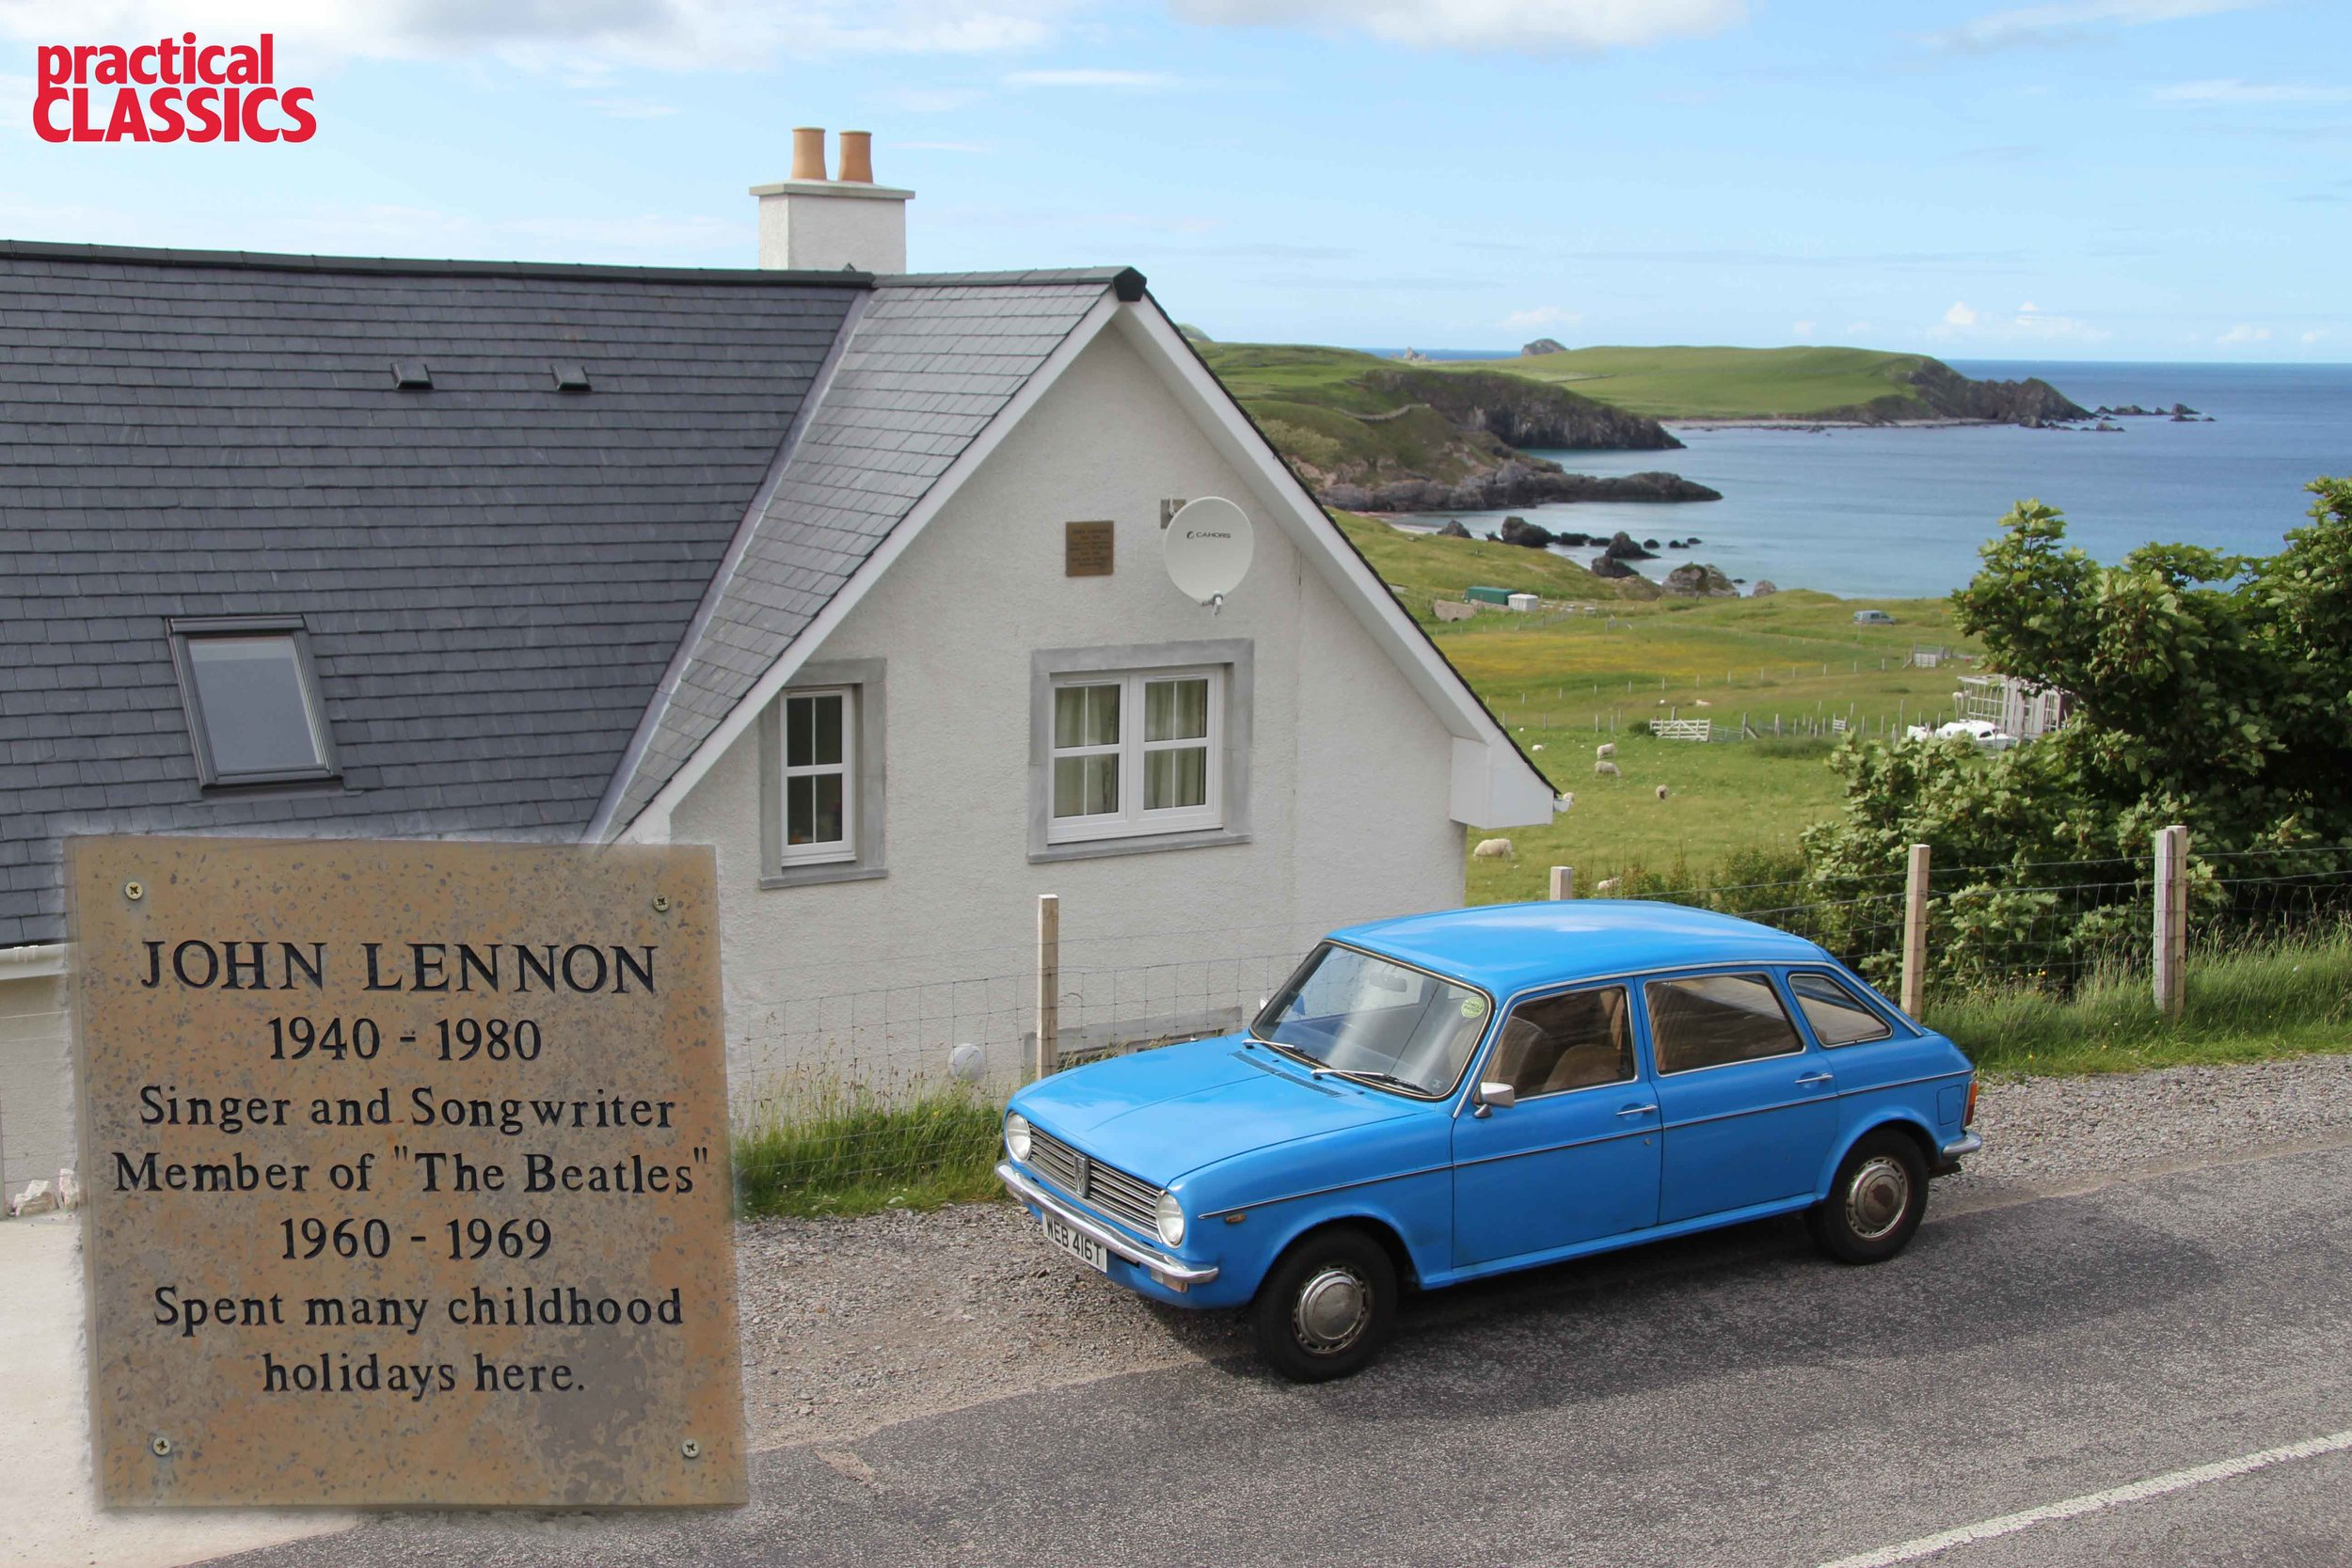 James stops at the home of John Lennon's aunt and scene of many a childhood family holiday.